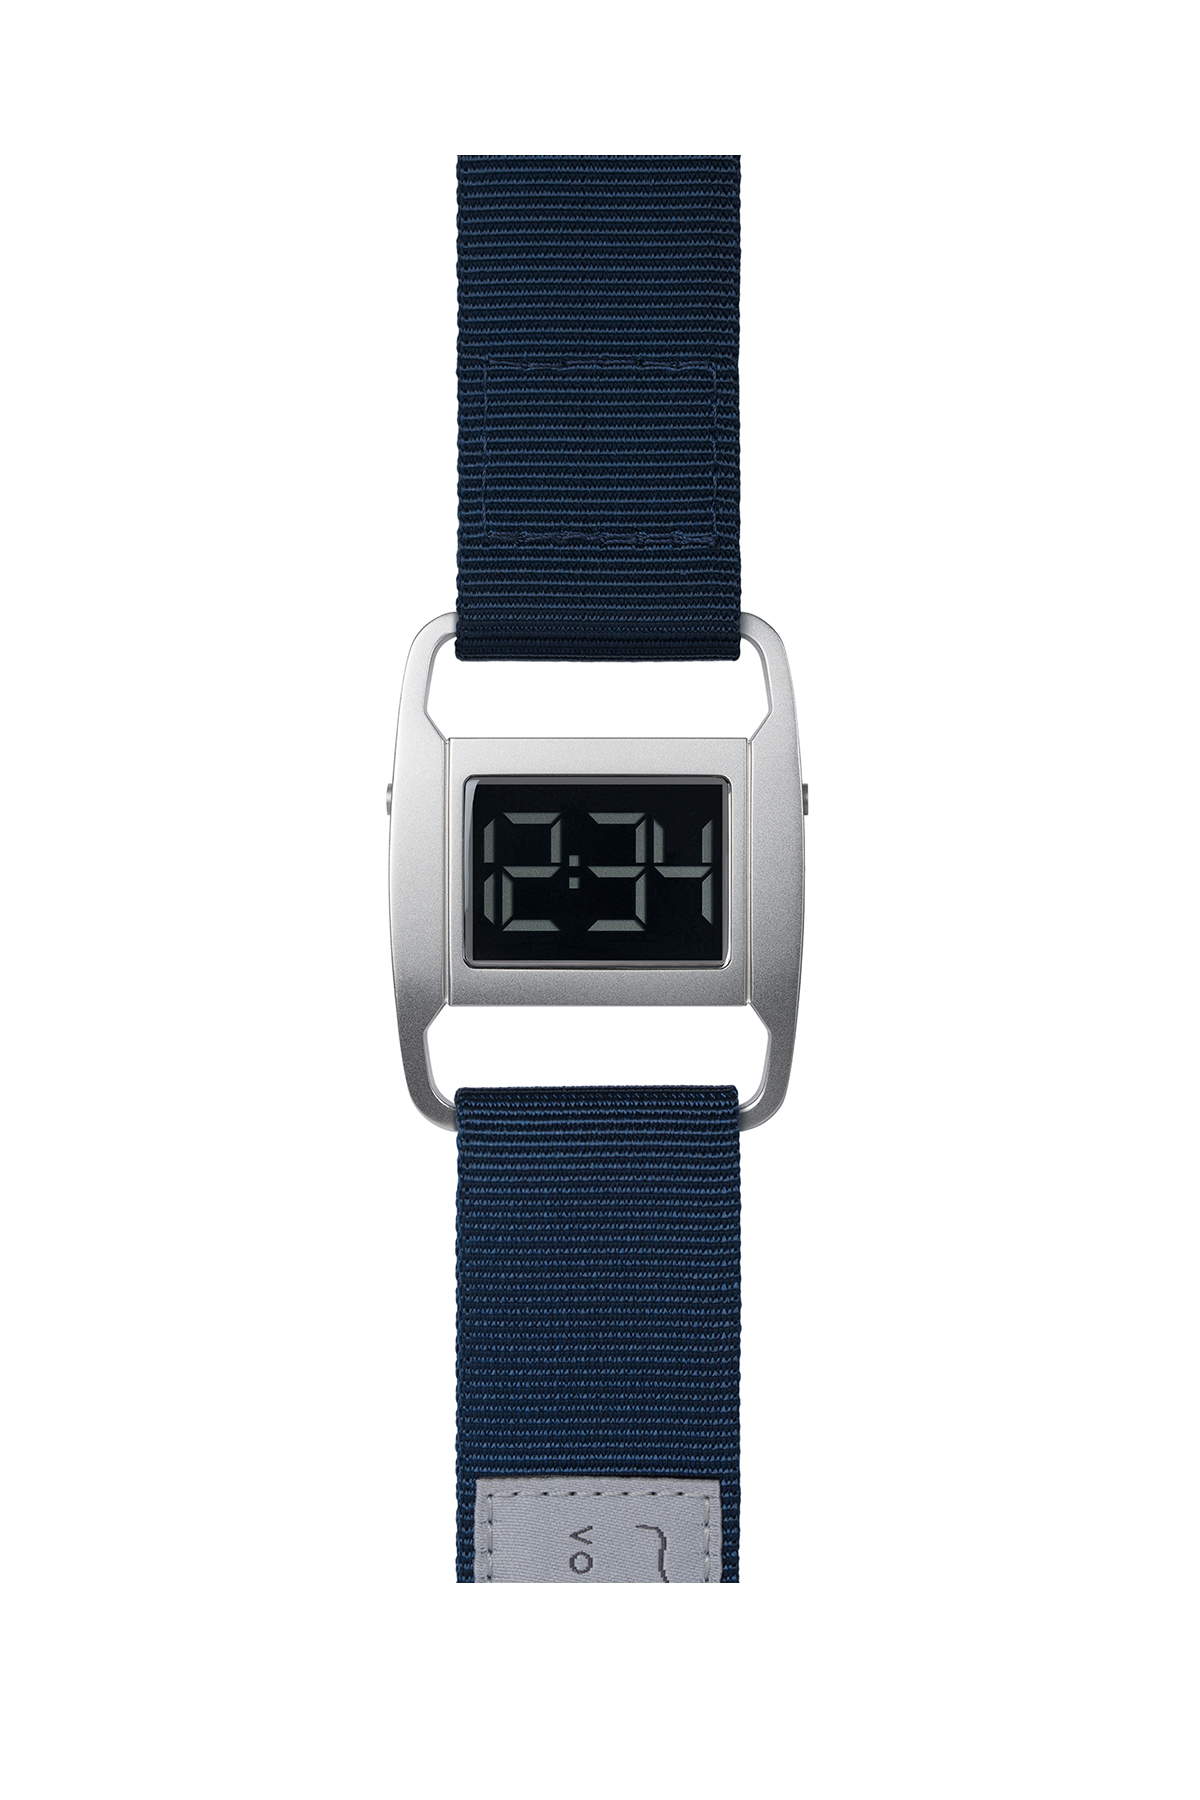 VOID WATCHES : PXR-5 (Silver / Navy)